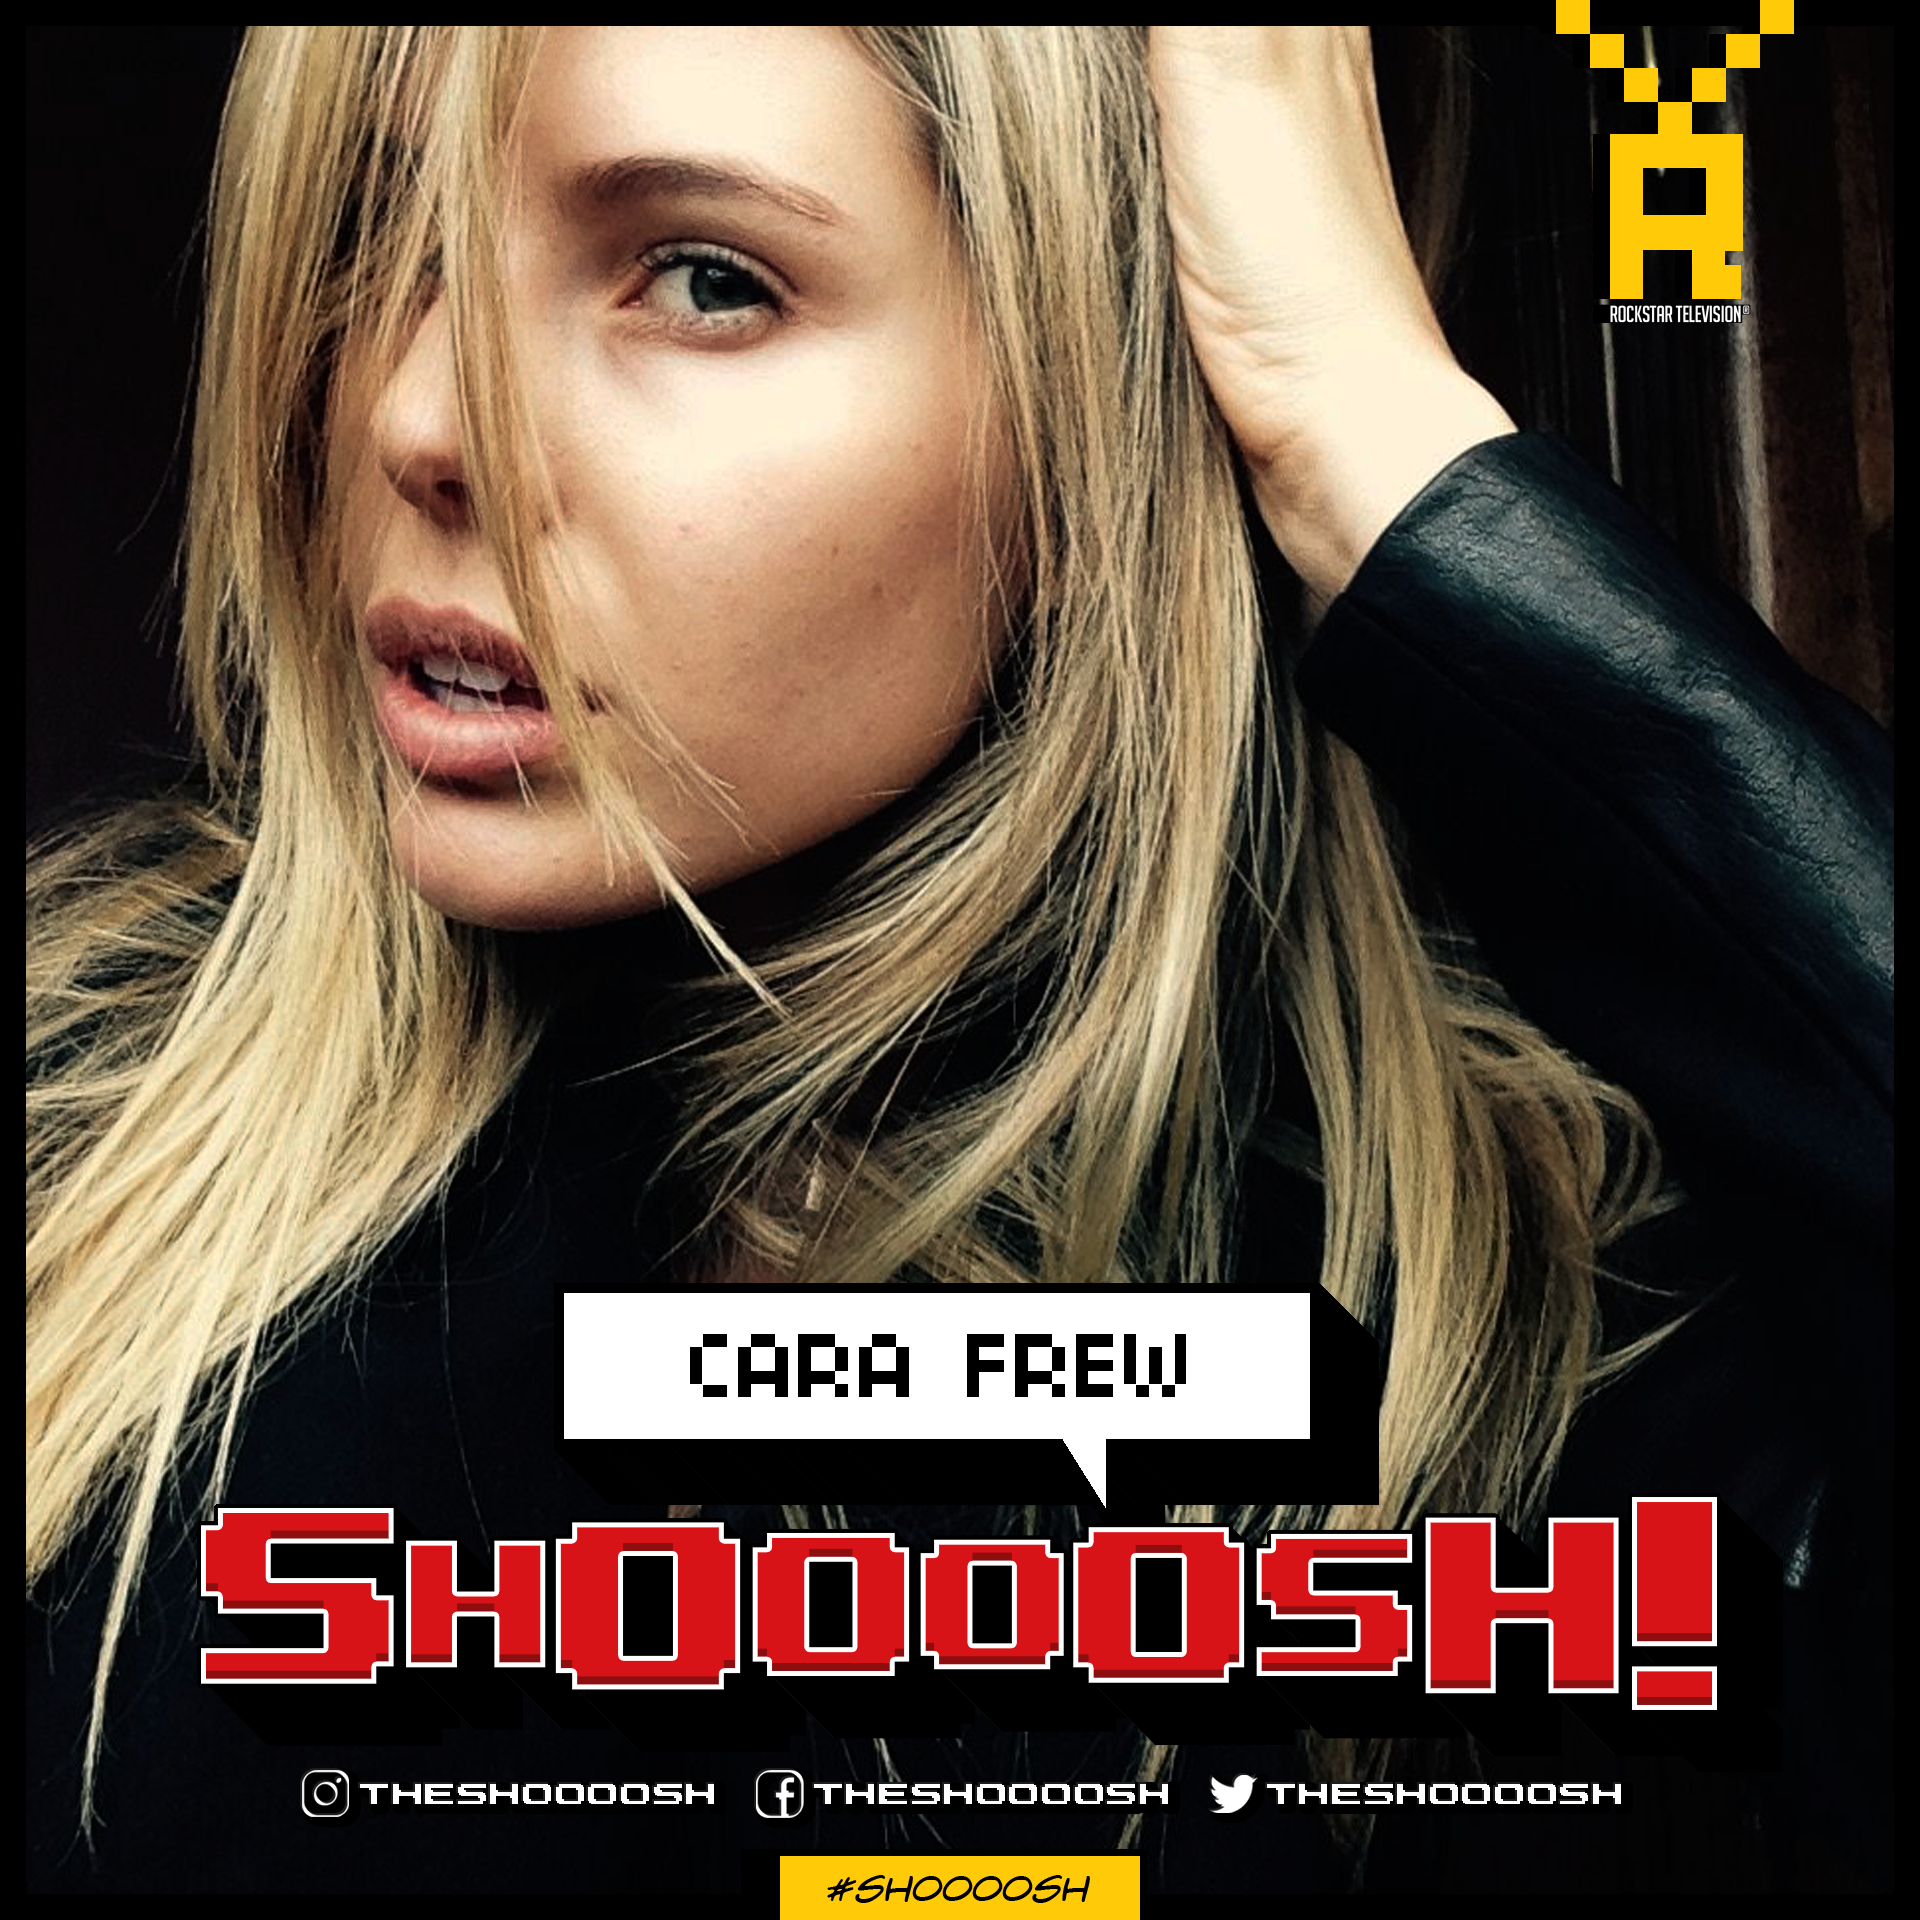 SHOOOOSH! CARA FREW00001